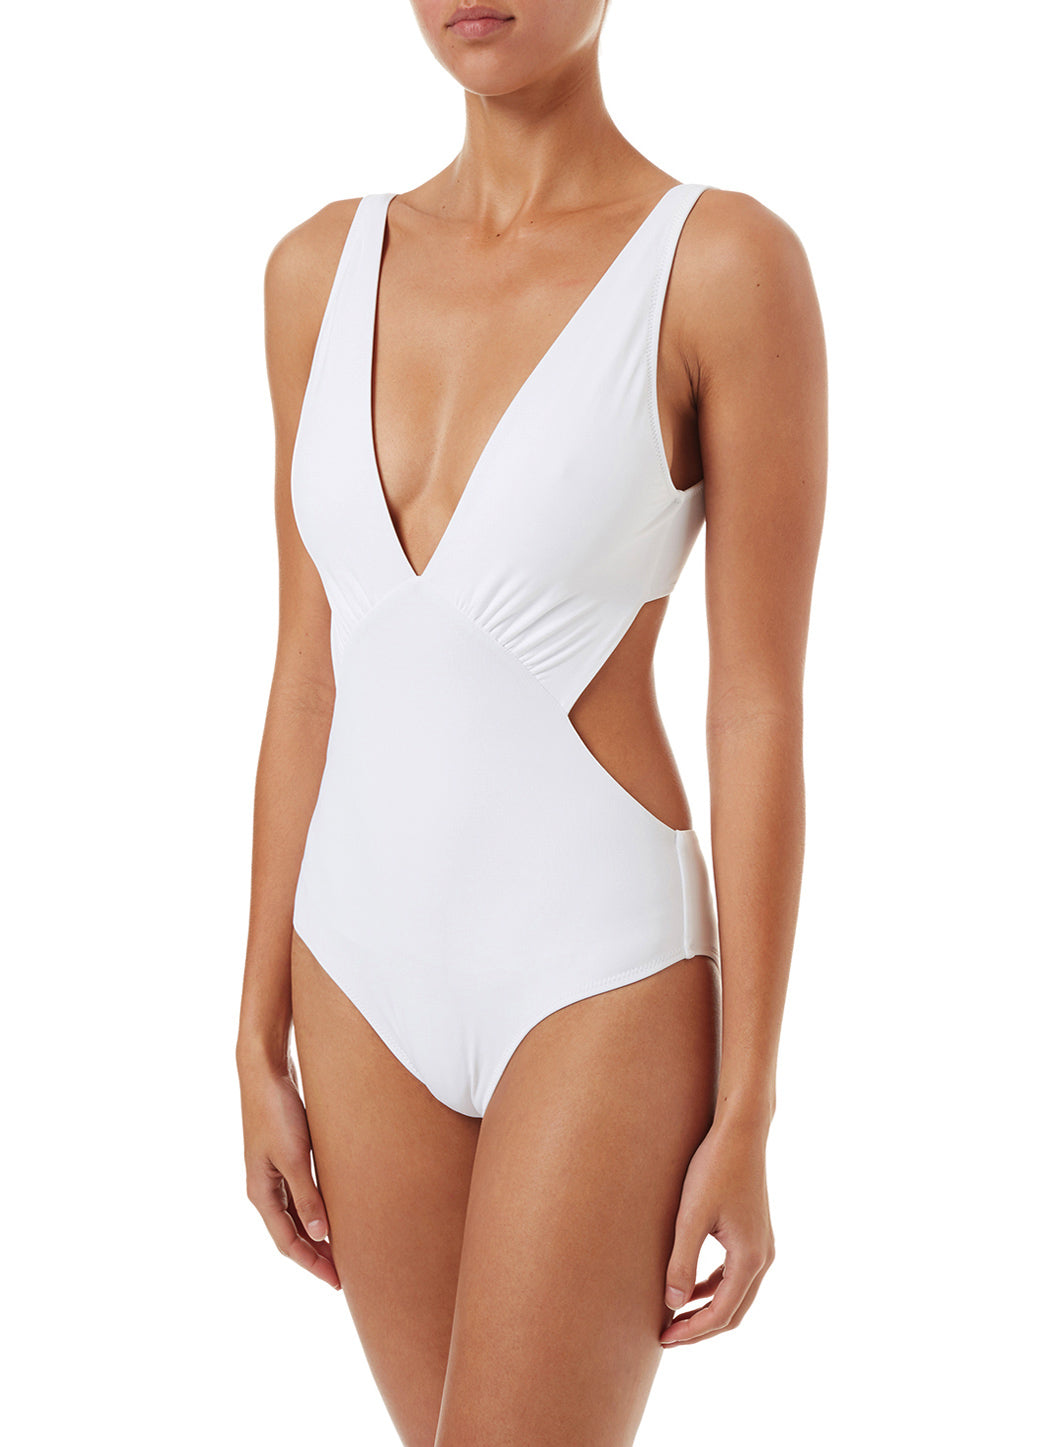 Delmar White Over The Shoulder V-Neck Cut Out Swimsuit